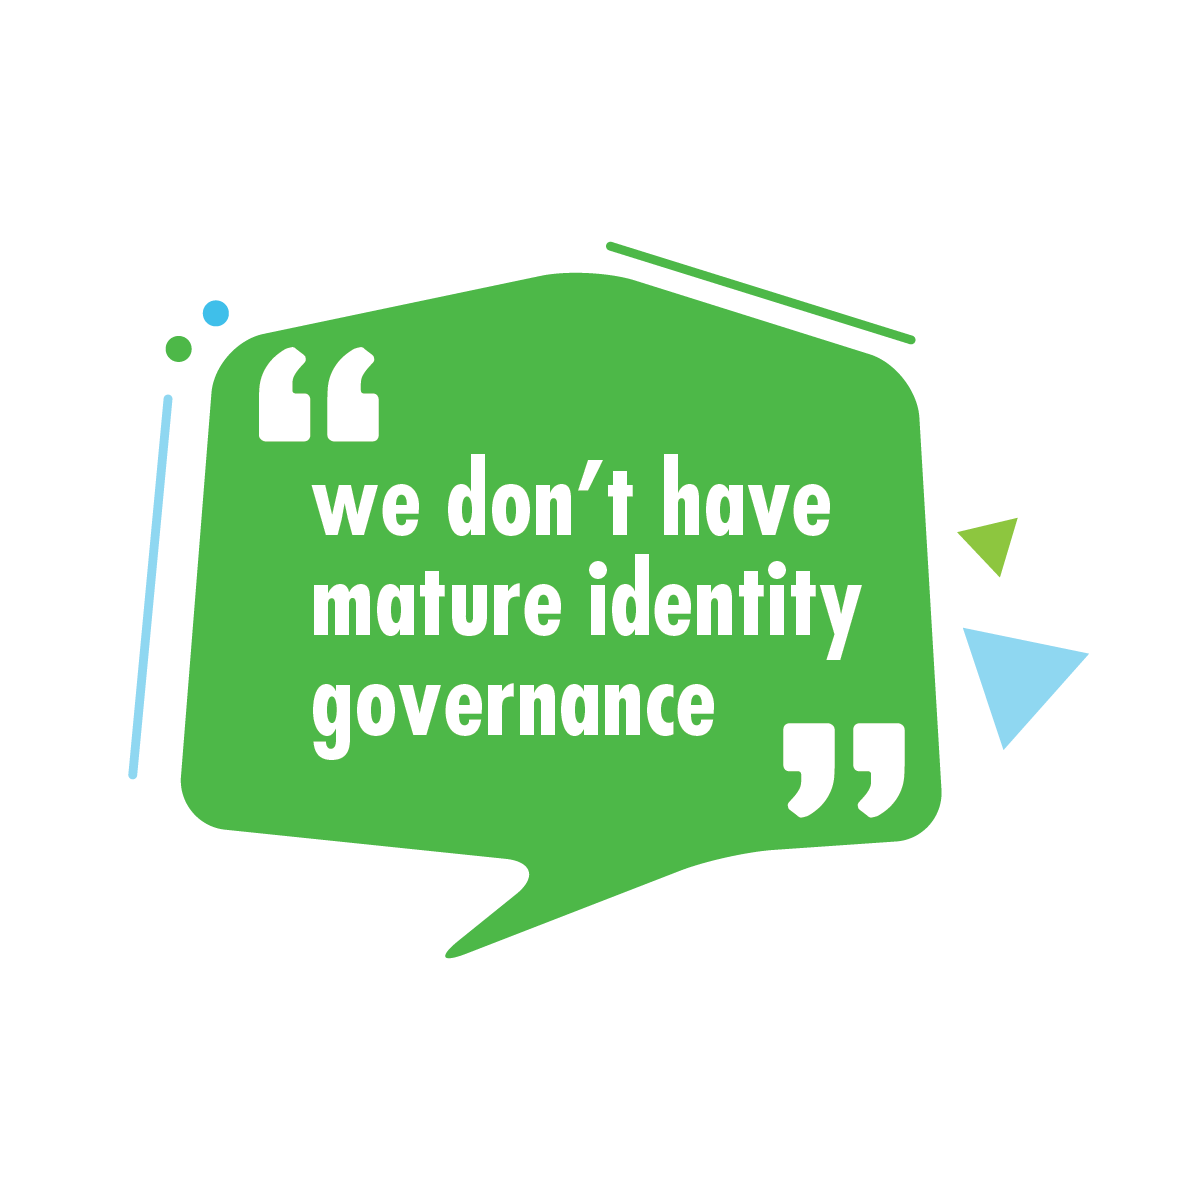 """We don't have mature identity governance."""